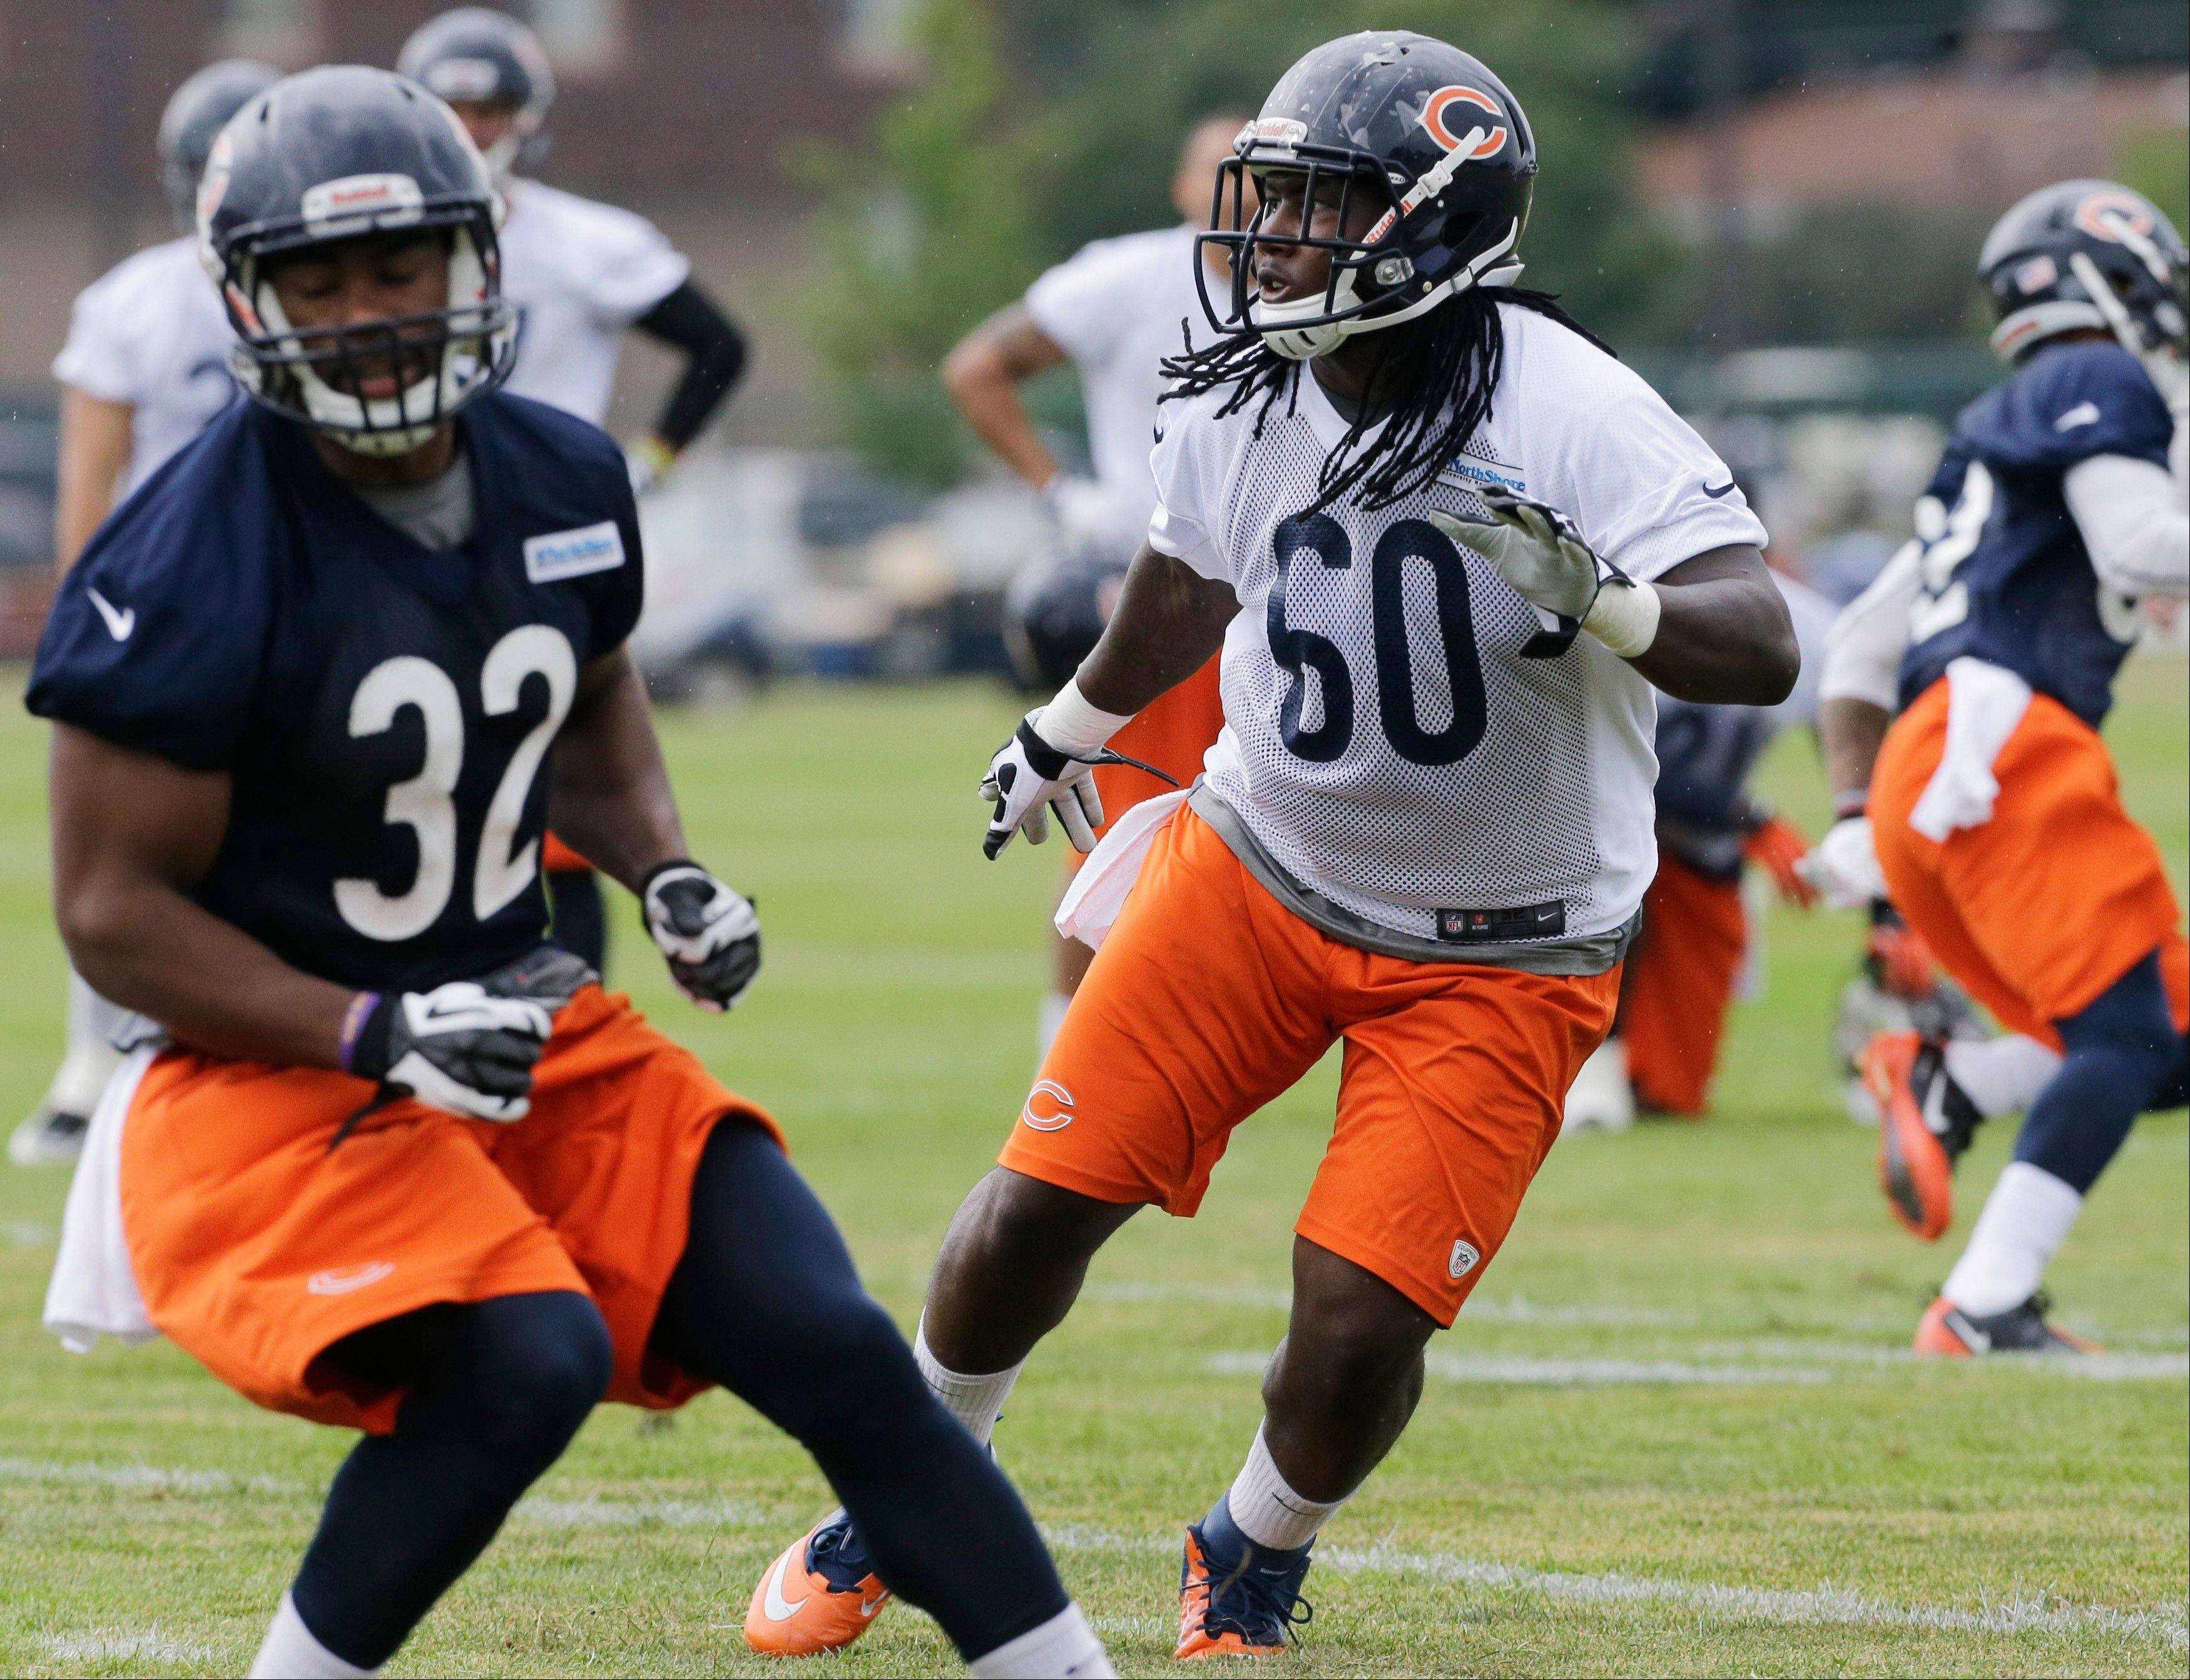 Chicago Bears linebacker Khaseem Greene works with teammates.